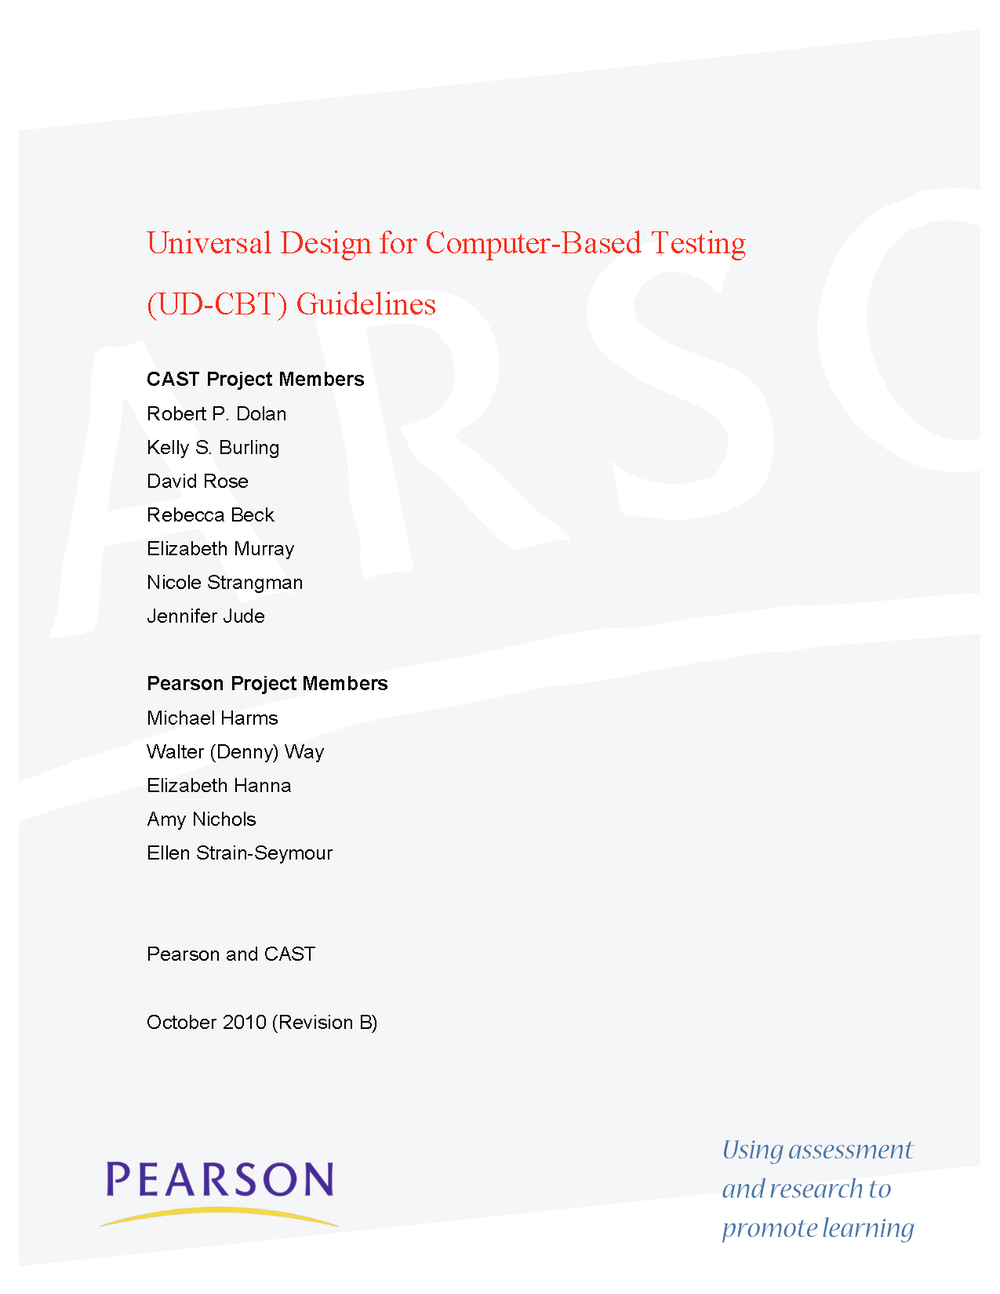 Thumbnail of research report Universal Design for Computer-Based Testing (UD-CBT) Guidelines